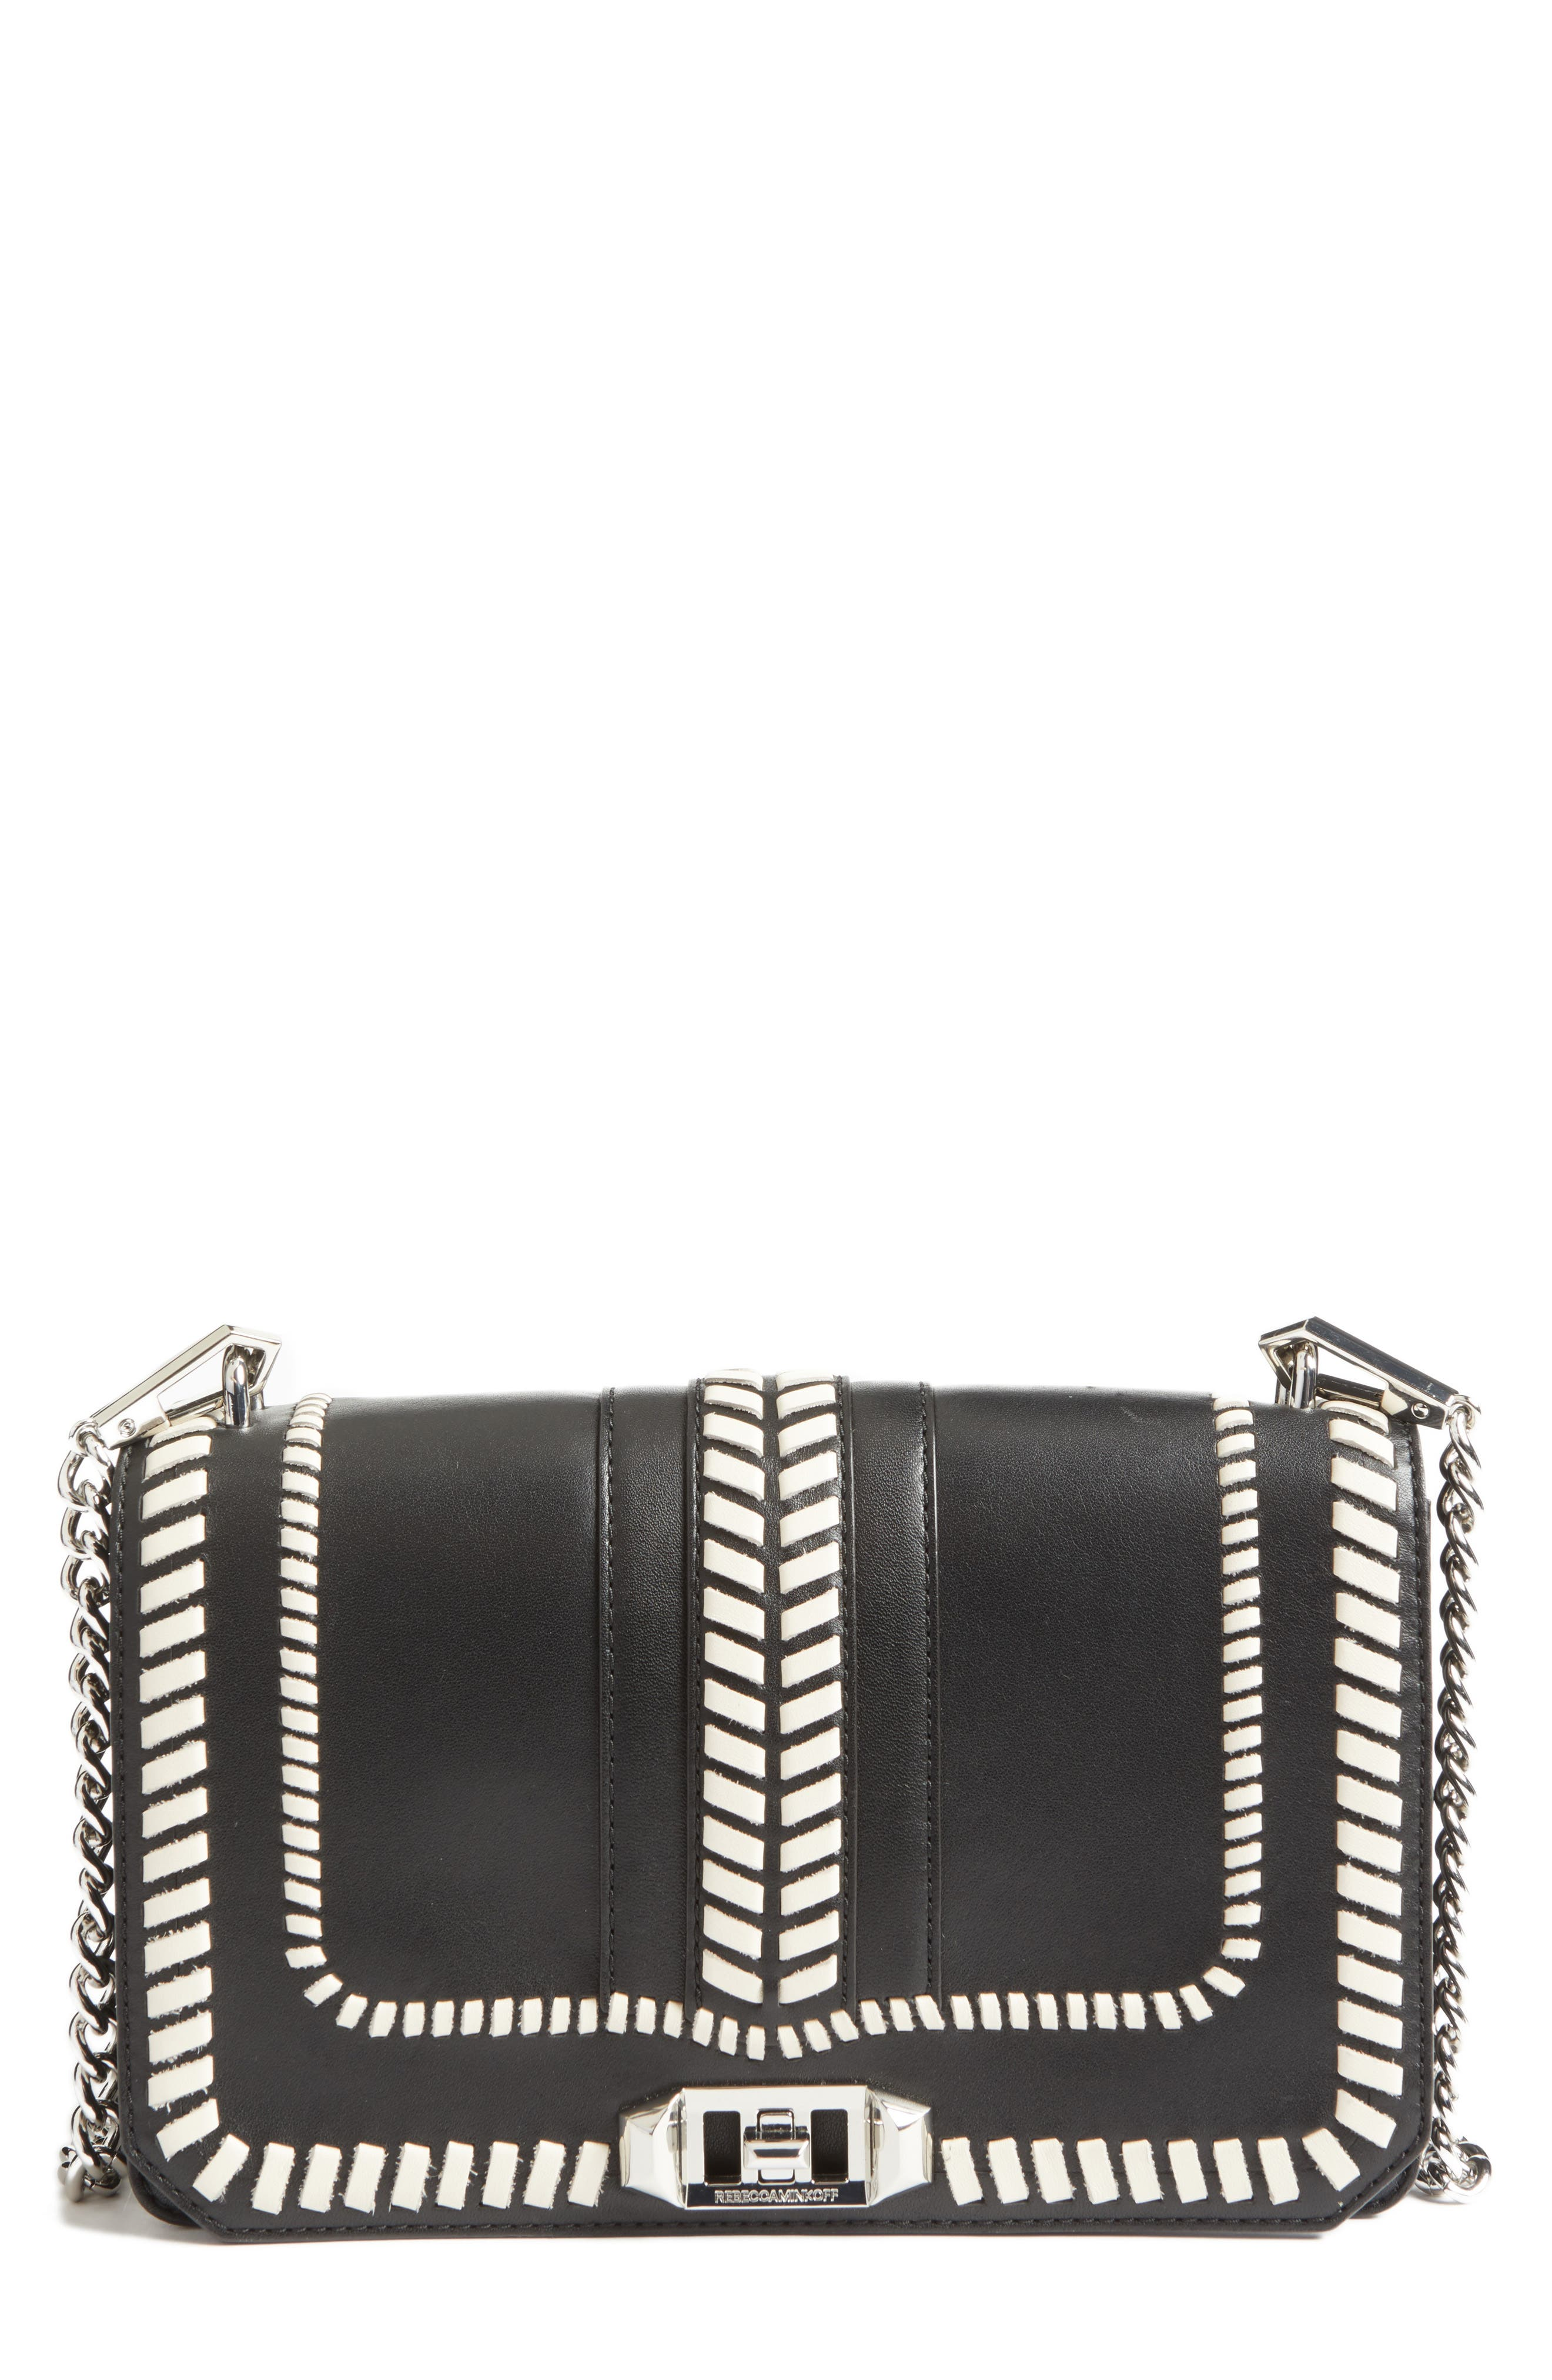 Main Image - Rebecca Minkoff Love Leather Convertible Crossbody Bag